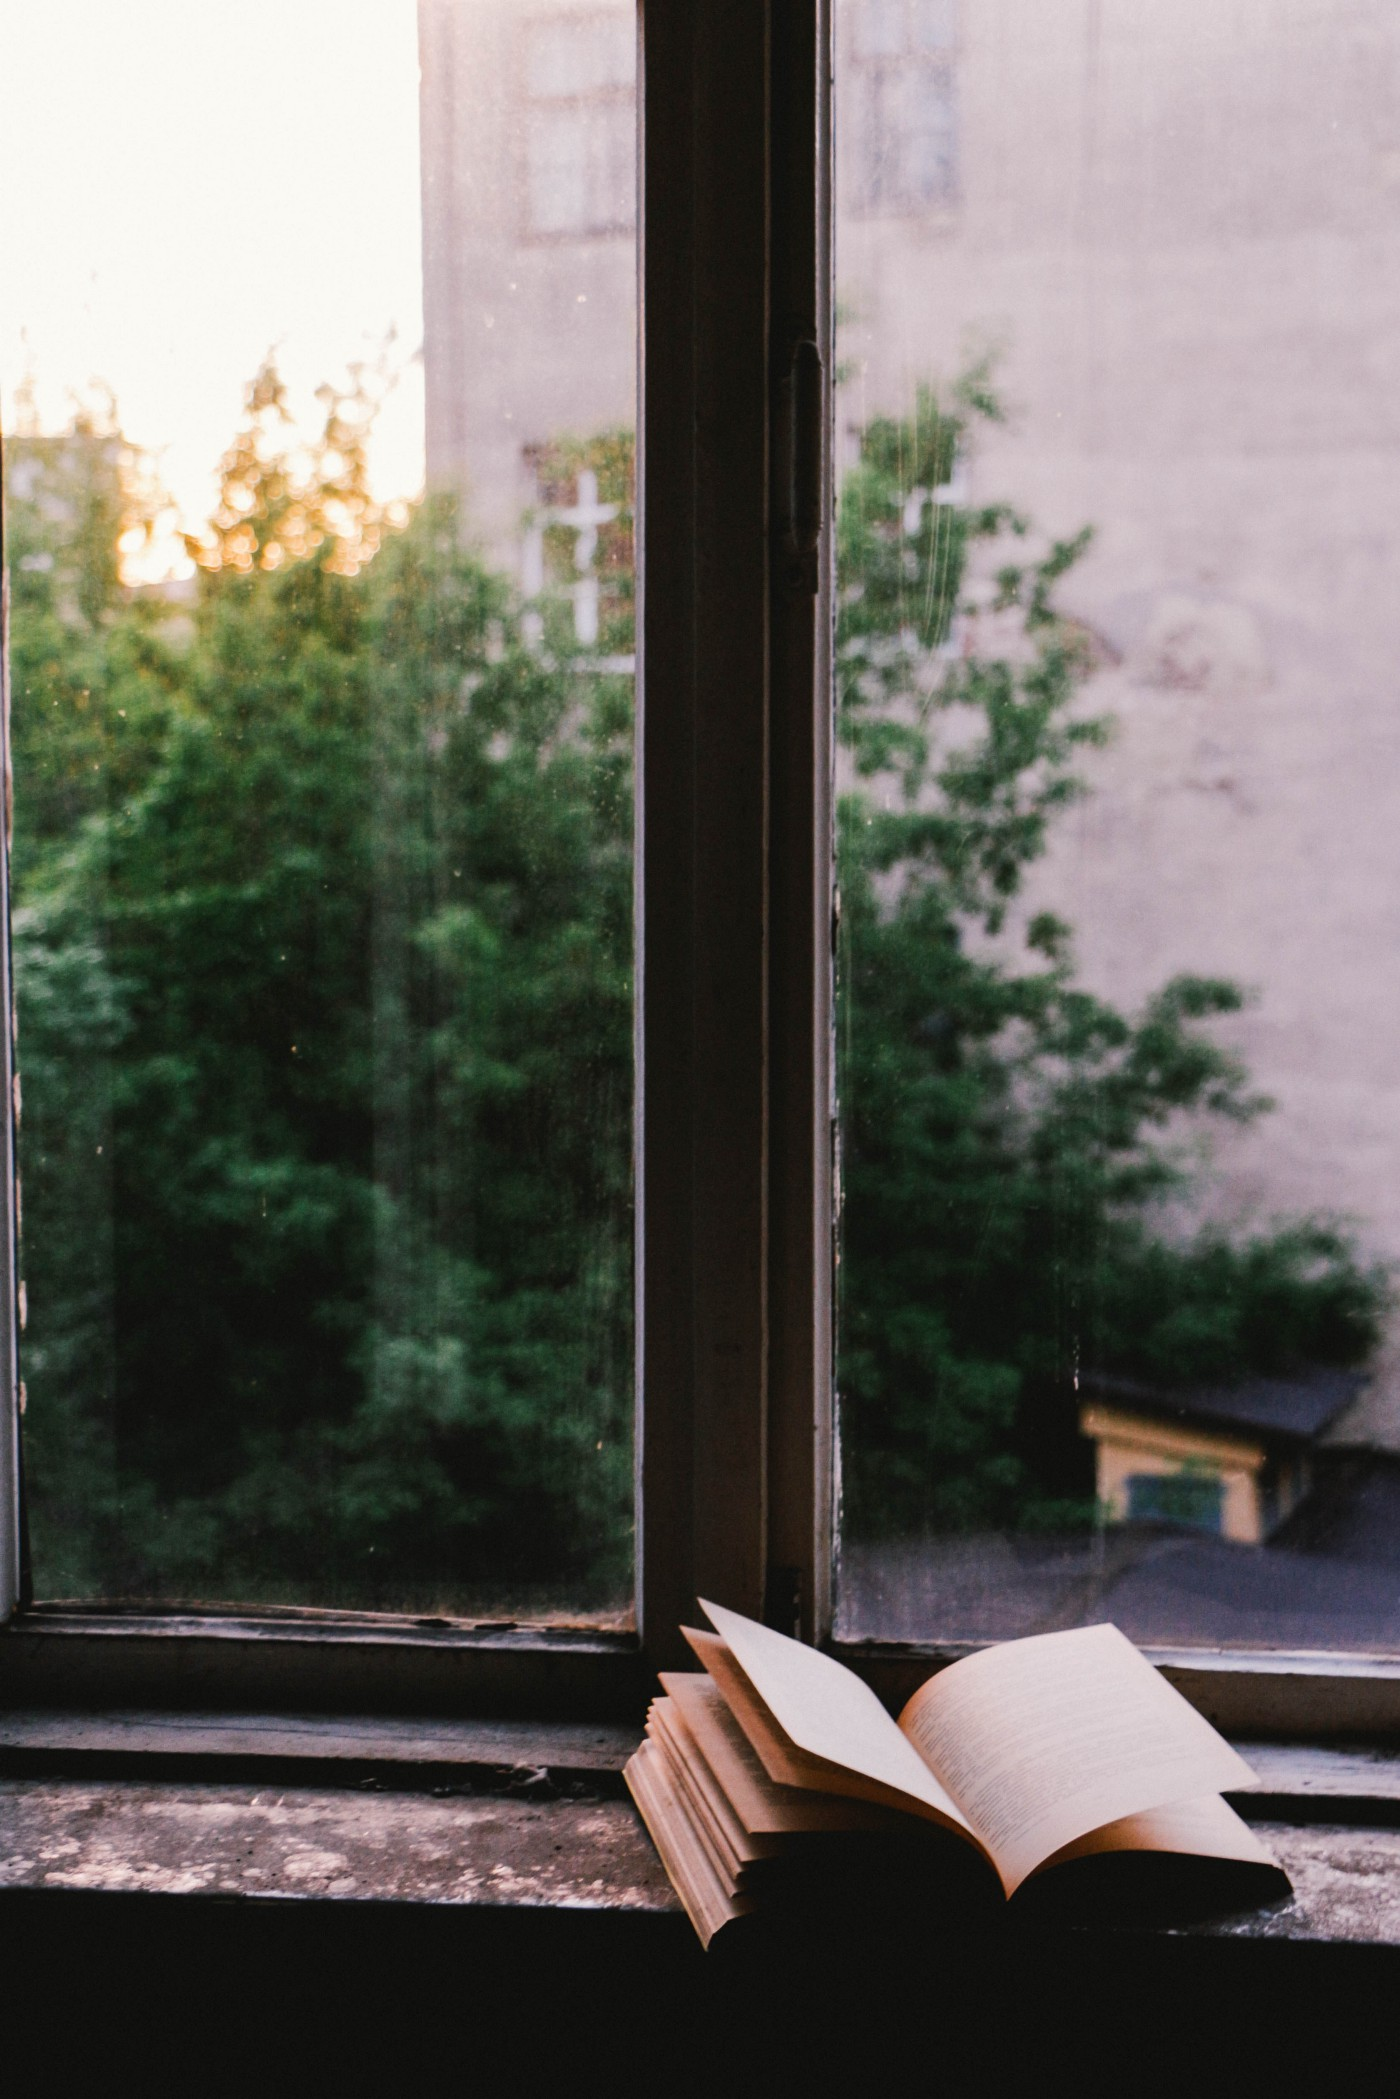 A book sits open on a window ledge, with a view of a building and trees beyond.